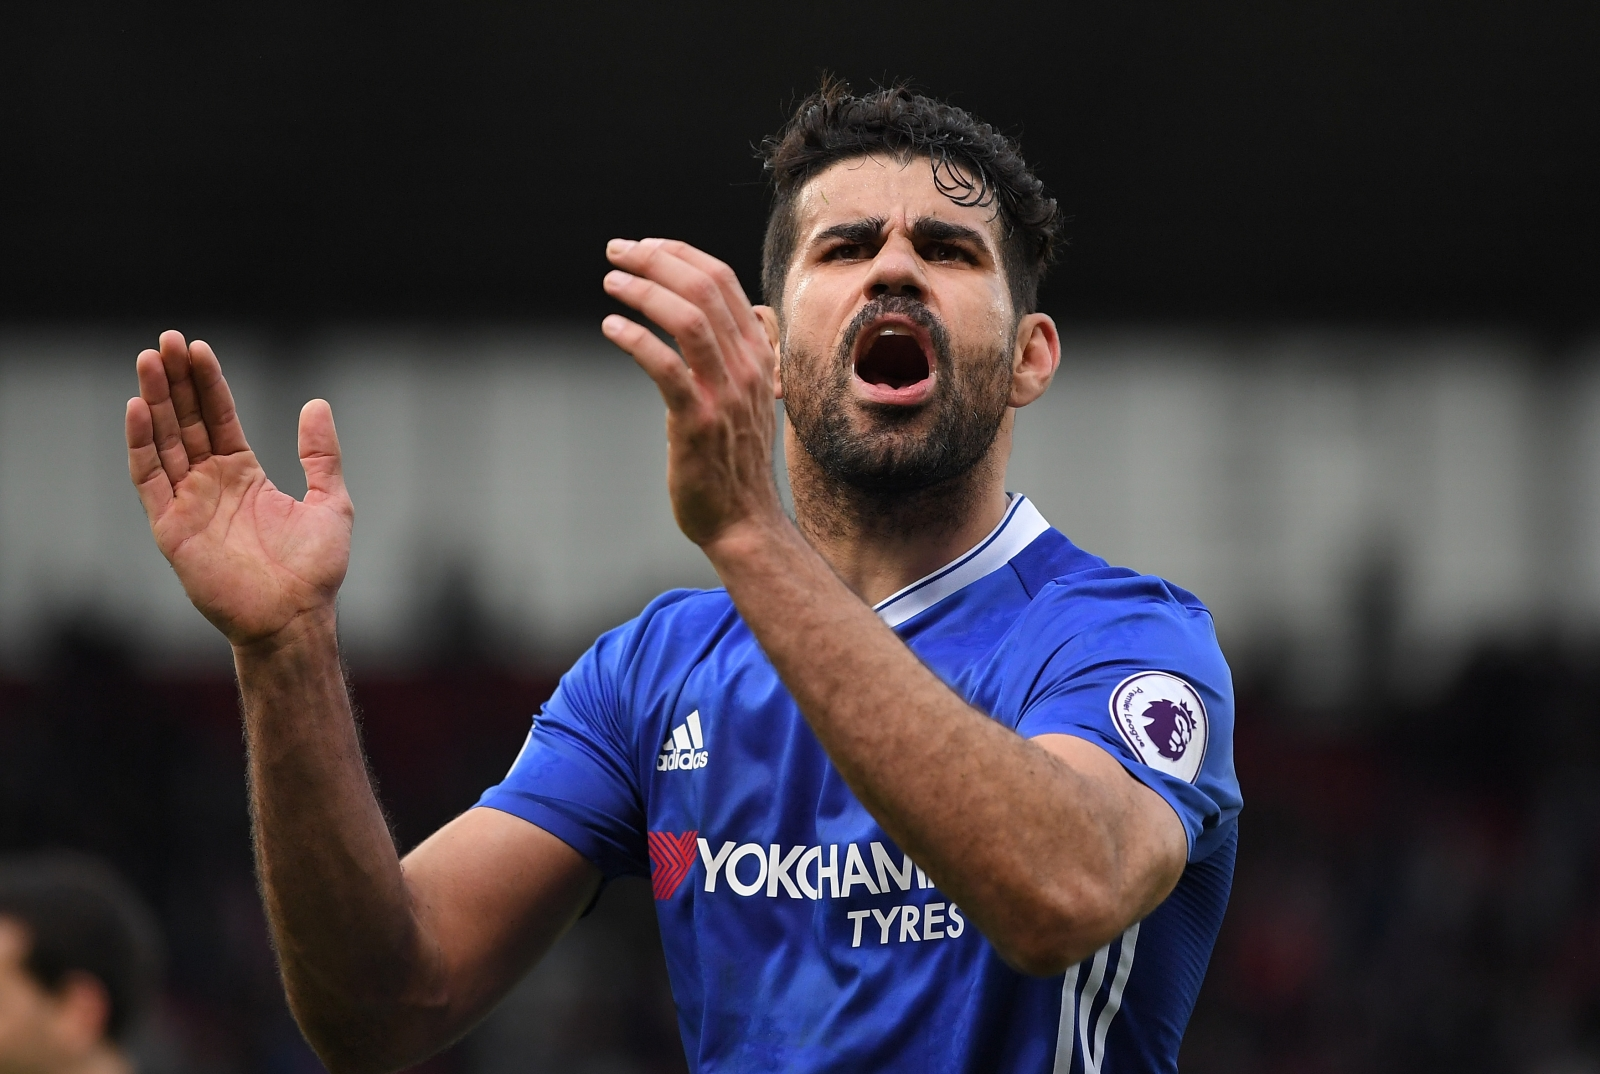 Chelsea star Diego Costa open to shock Marseille move